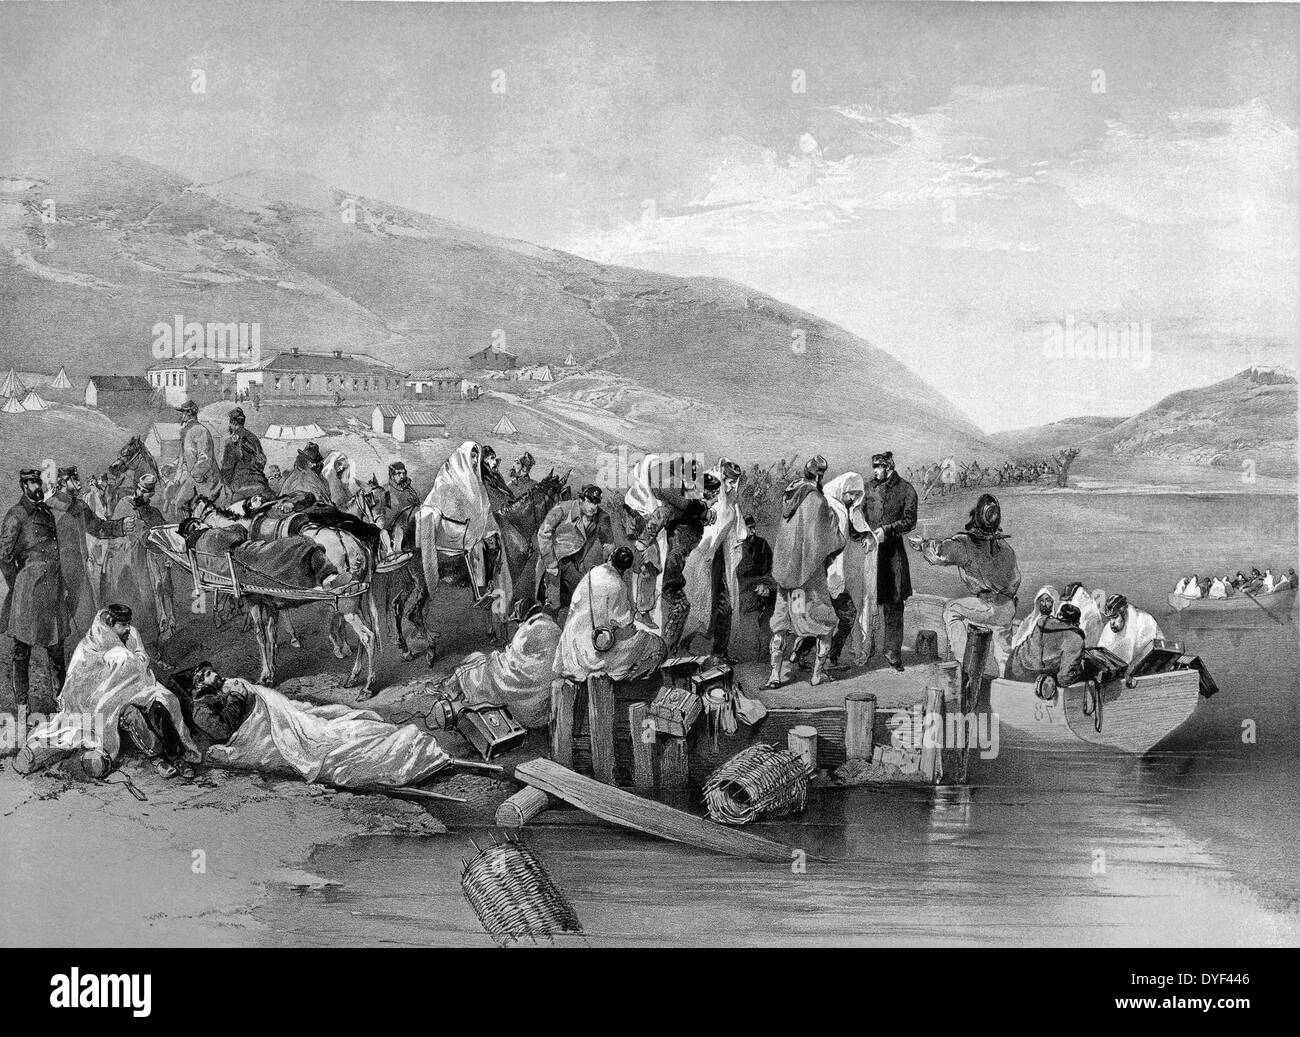 Illustration depicting some of the casualties which occurred during the Crimean War, 'Embarkation of the sick at Balaklava'. - Stock Image